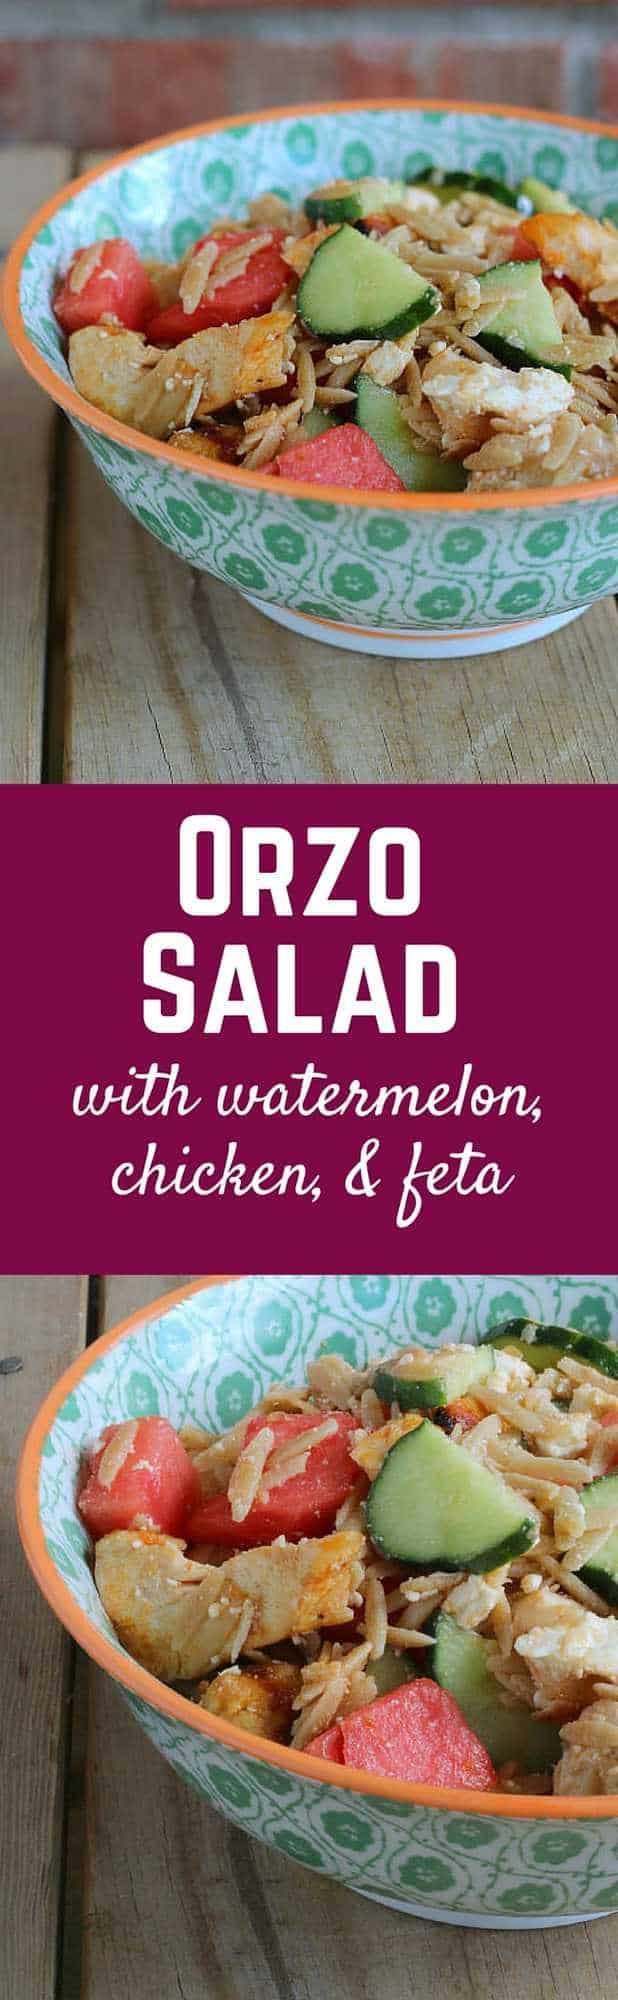 Orzo Salad with Chicken, Watermelon and Feta - Get the refreshing and flavorful summer recipe on RachelCooks.com!